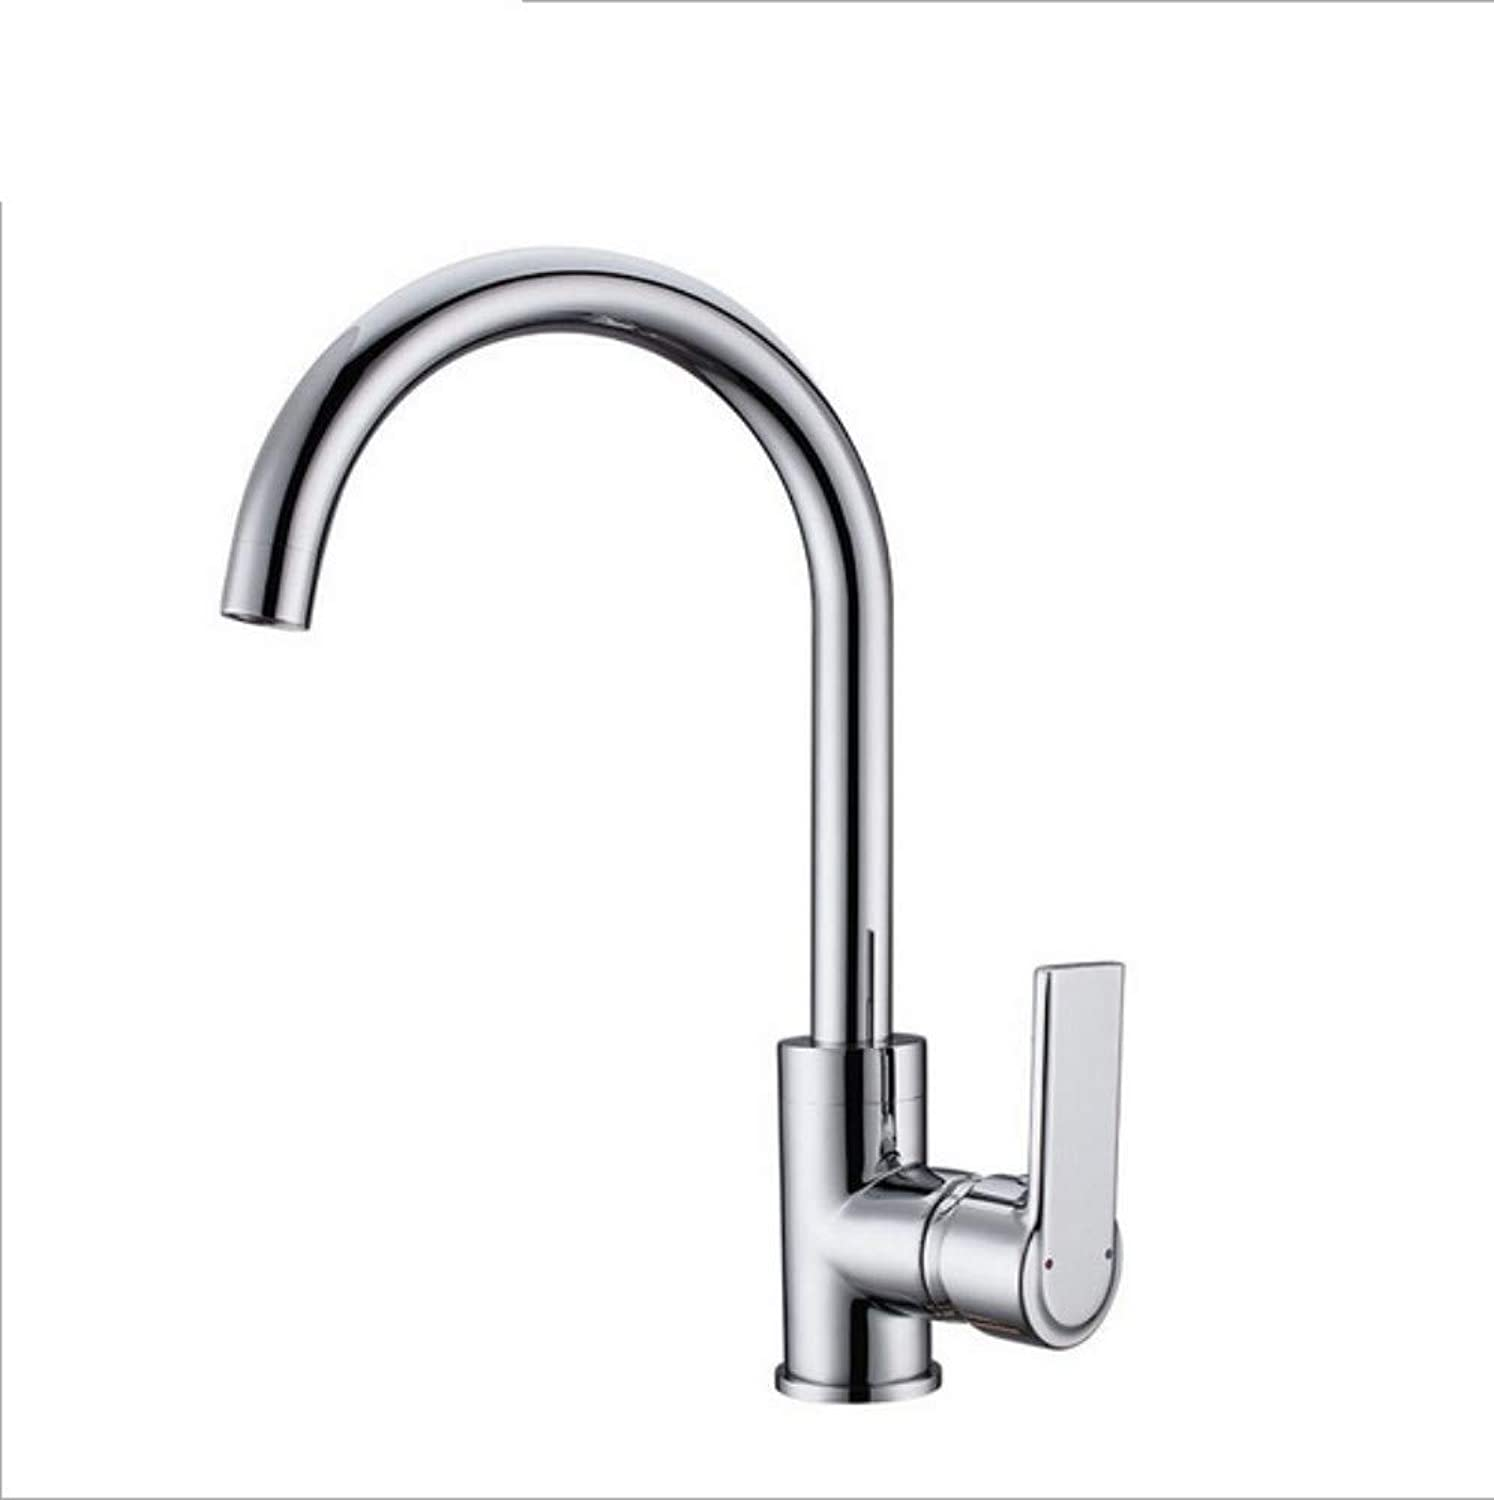 Xiujie Faucet Copper Chrome Hot and Cold Kitchen Sink Faucet redary Sink Sink Faucet